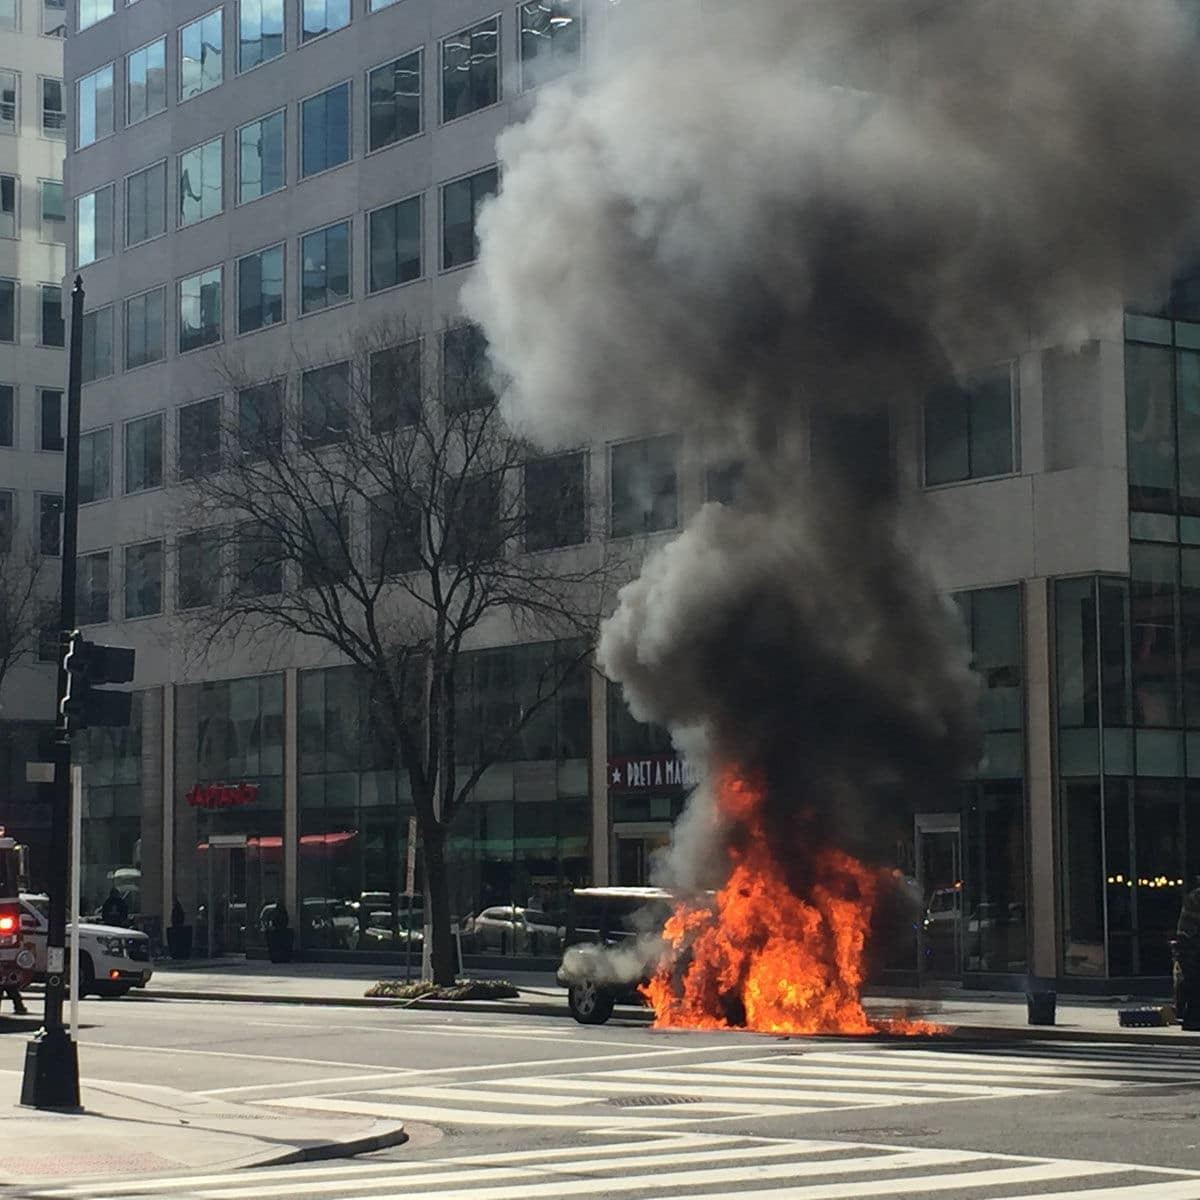 A jeep caught fire in downtown D.C. Tuesday afternoon. (Courtesy Suzanne Raven)